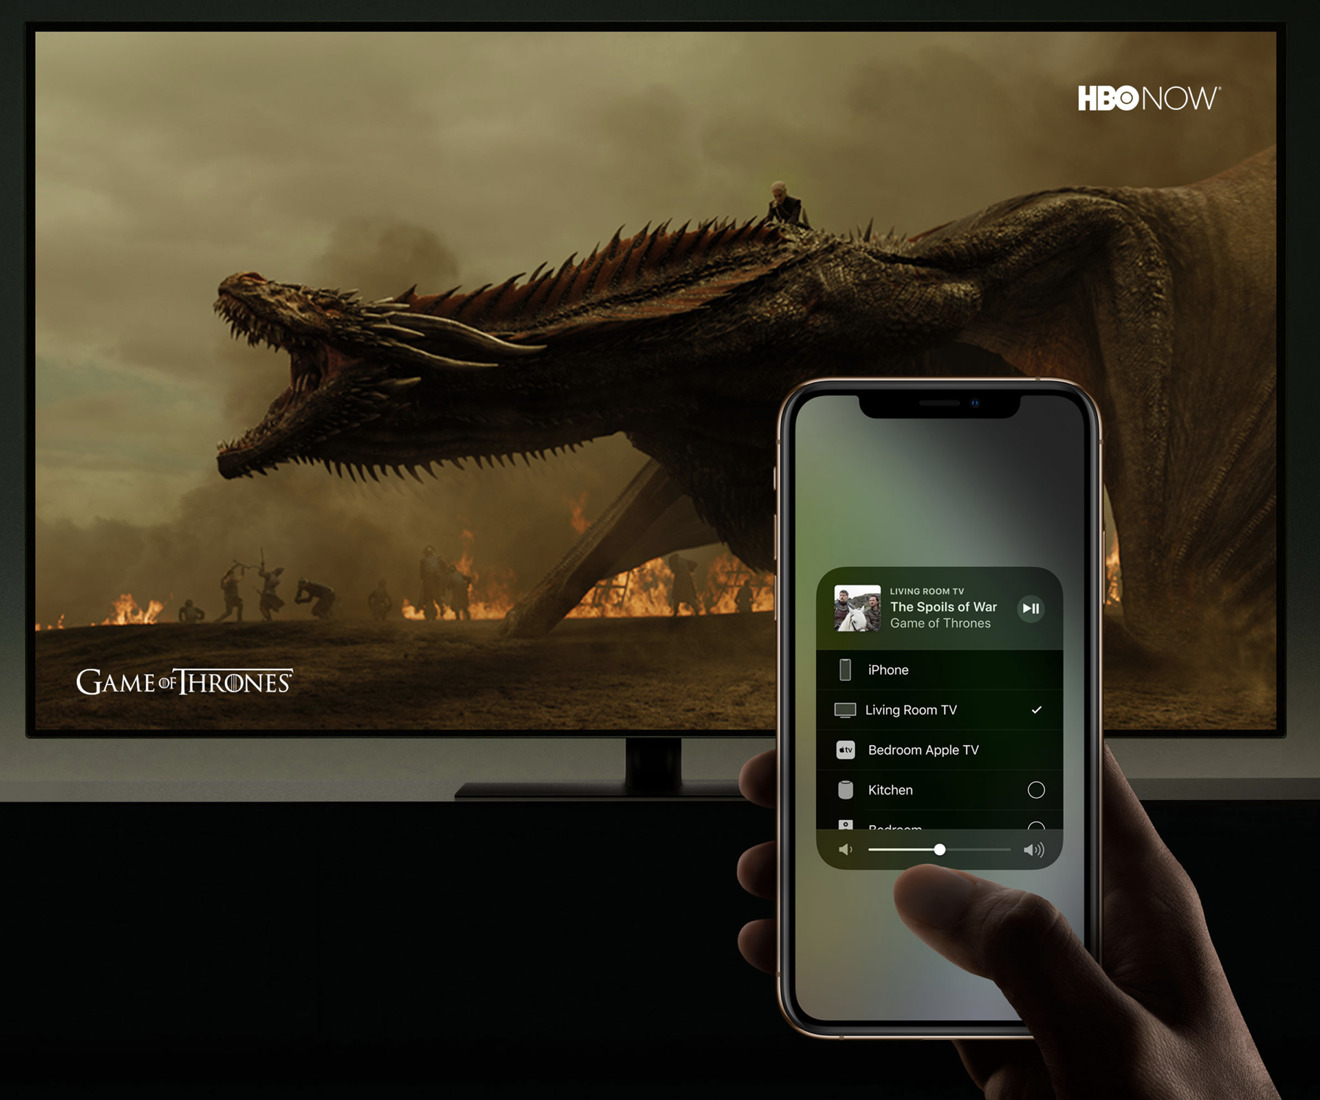 Apple clearly thinks people will use AirPlay 2 and subscription content on a variety of devices once they get a taste